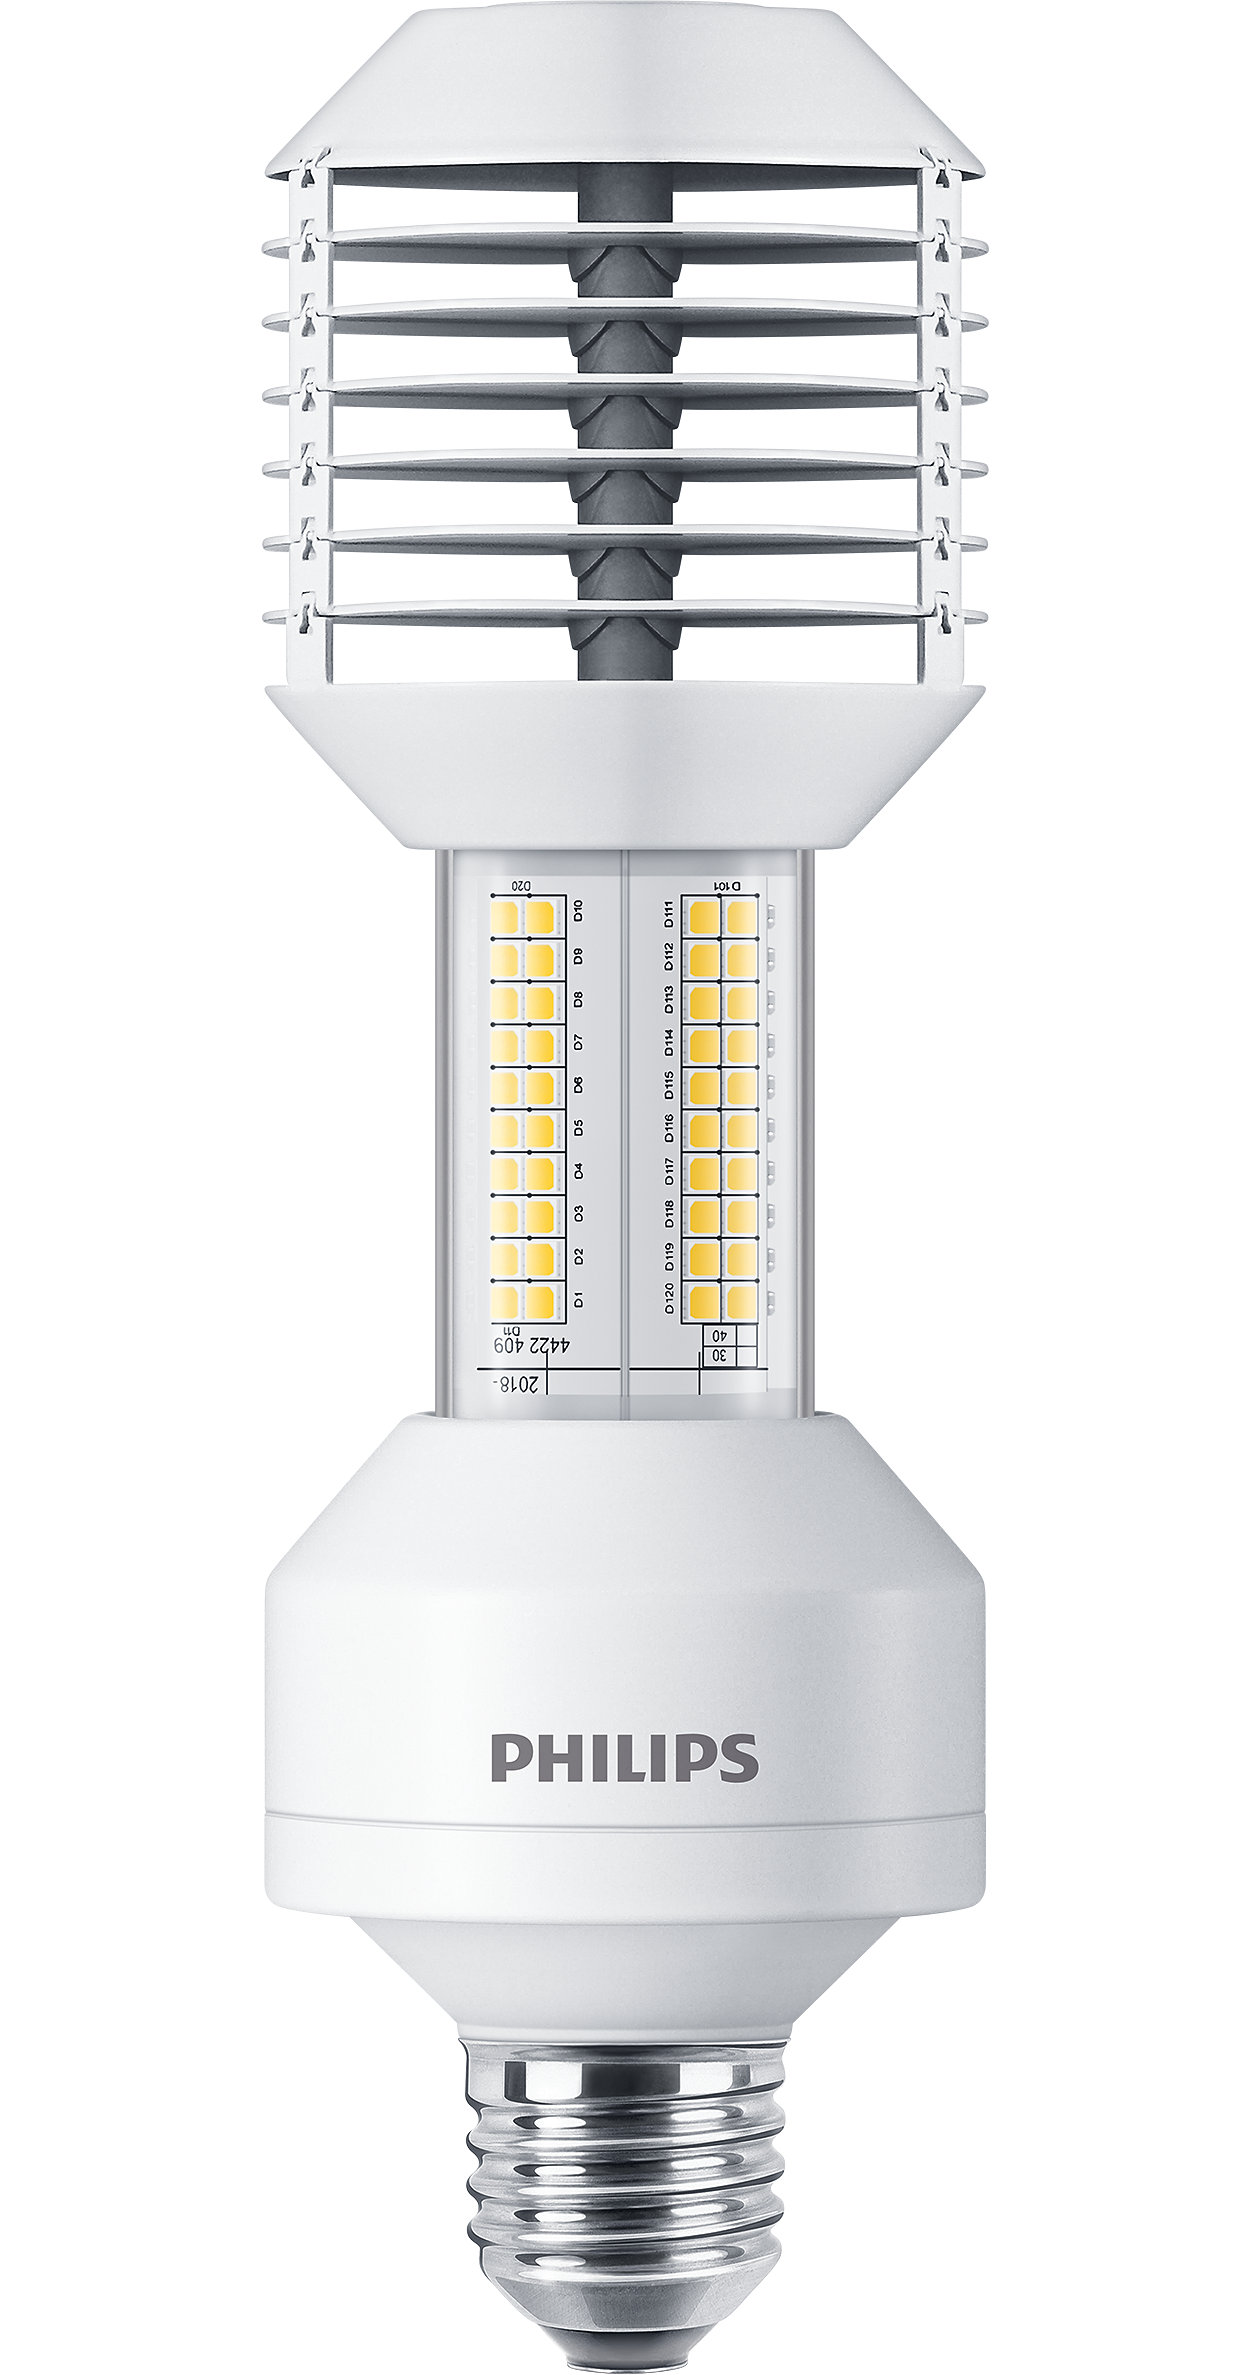 The best LED solution for High Intensity Discharge (HID) lamp replacement